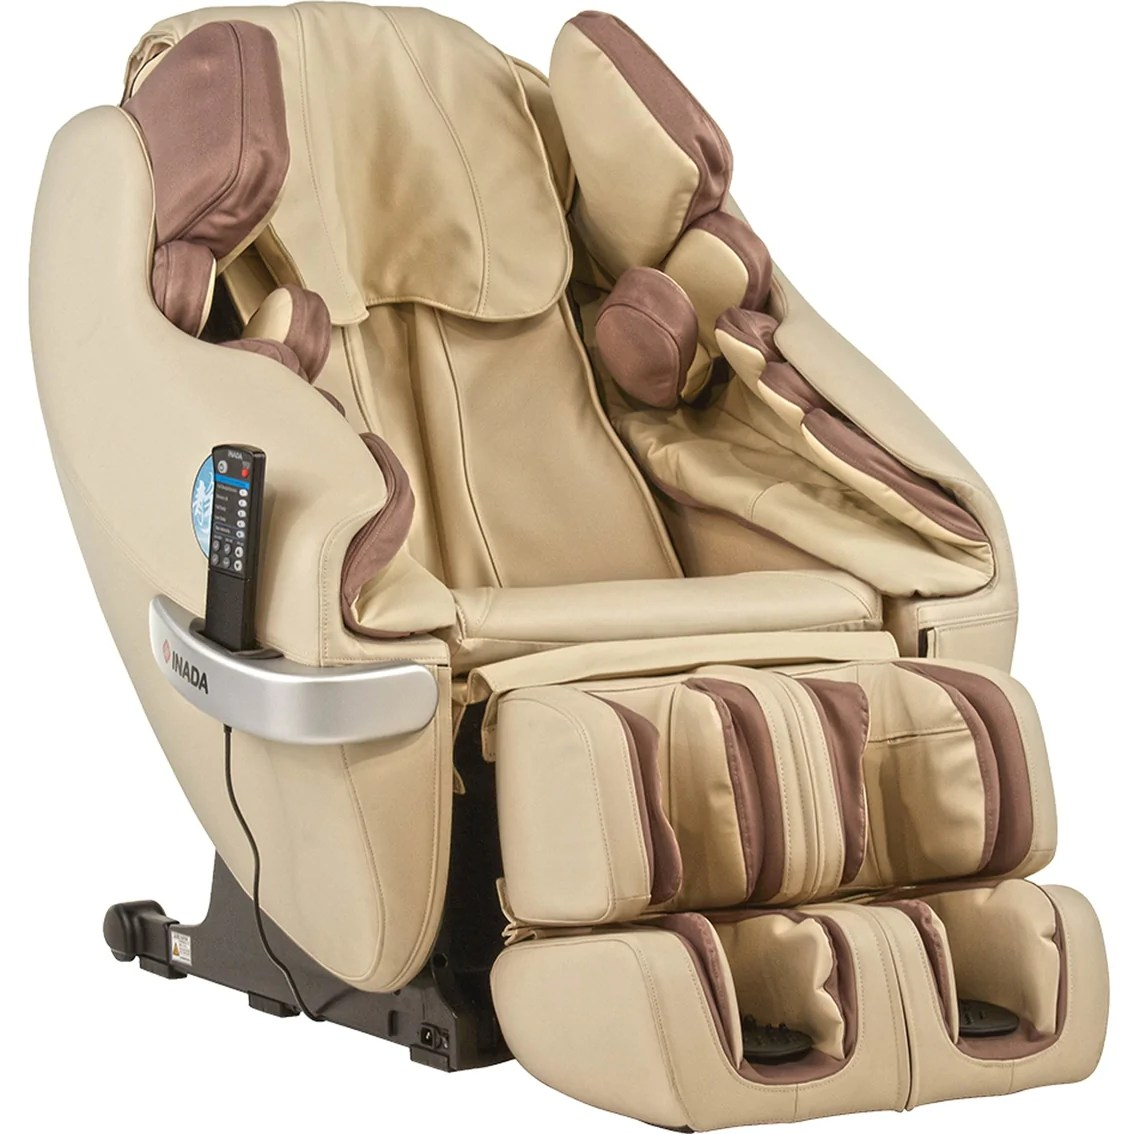 Inada Sogno Dreamwave Massage Chair Inada Nest Massage Chair